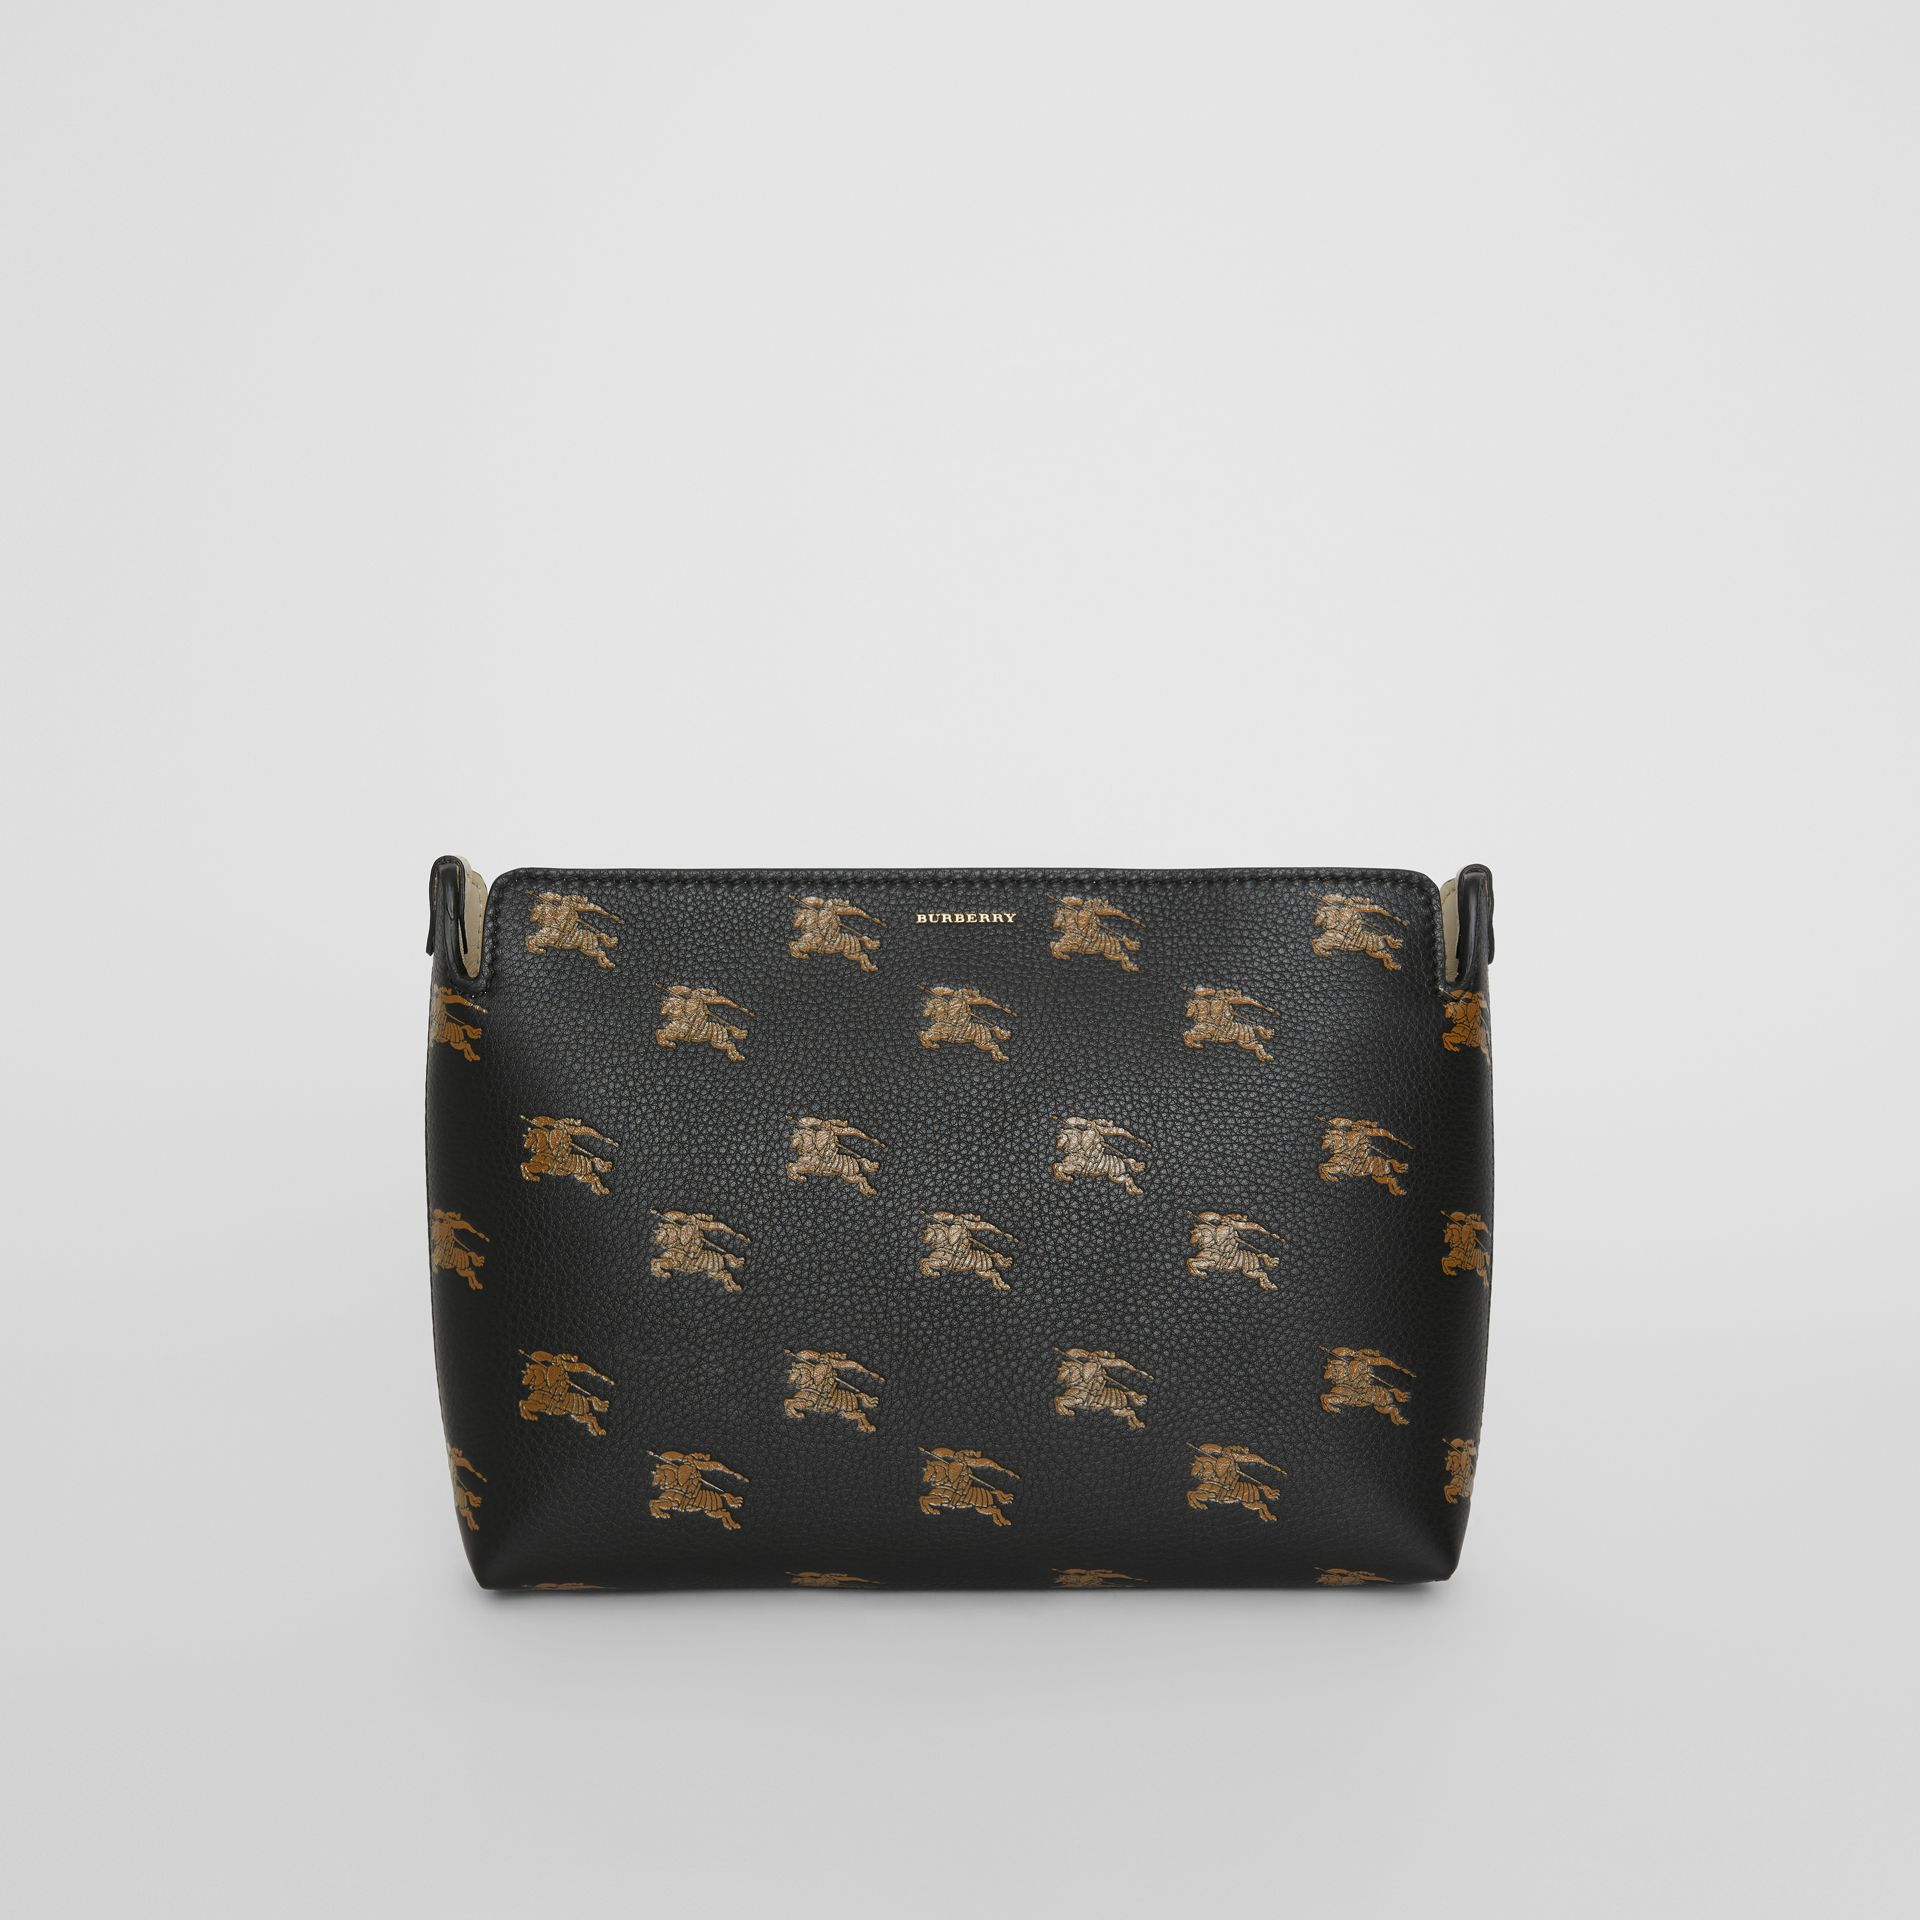 Medium Equestrian Knight Leather Clutch in Black - Women | Burberry United Kingdom - gallery image 0